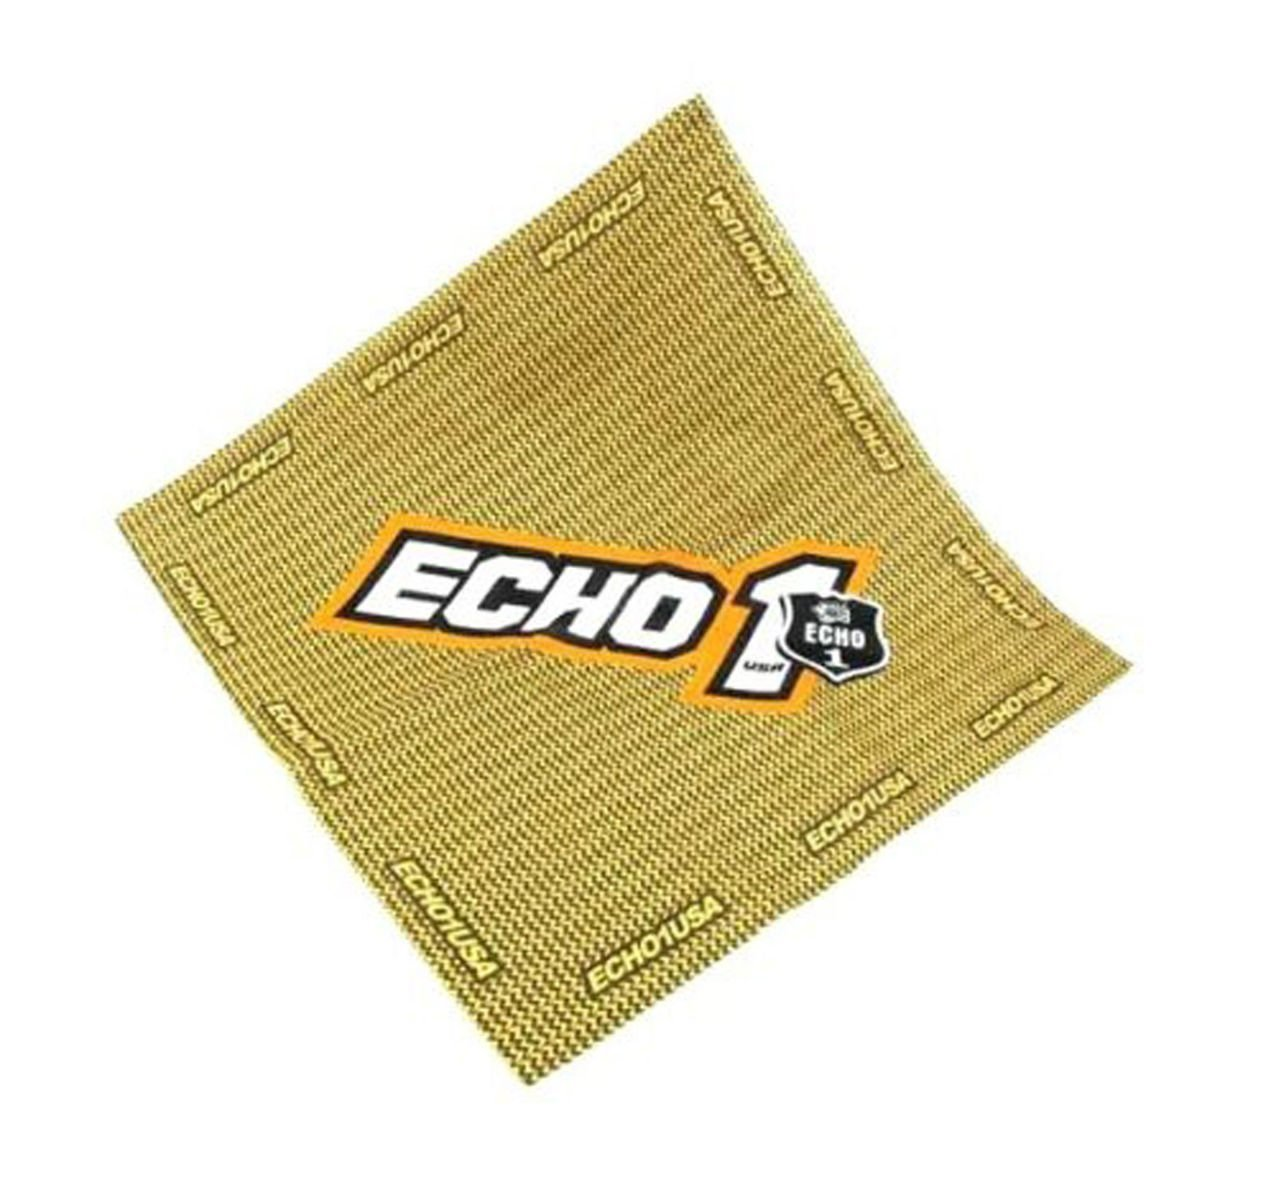 Echo1 Tactical Airsoft Kill Rag Bandana (Desert Tan), Features: Manufactured by Echo1! By Echo 1 by